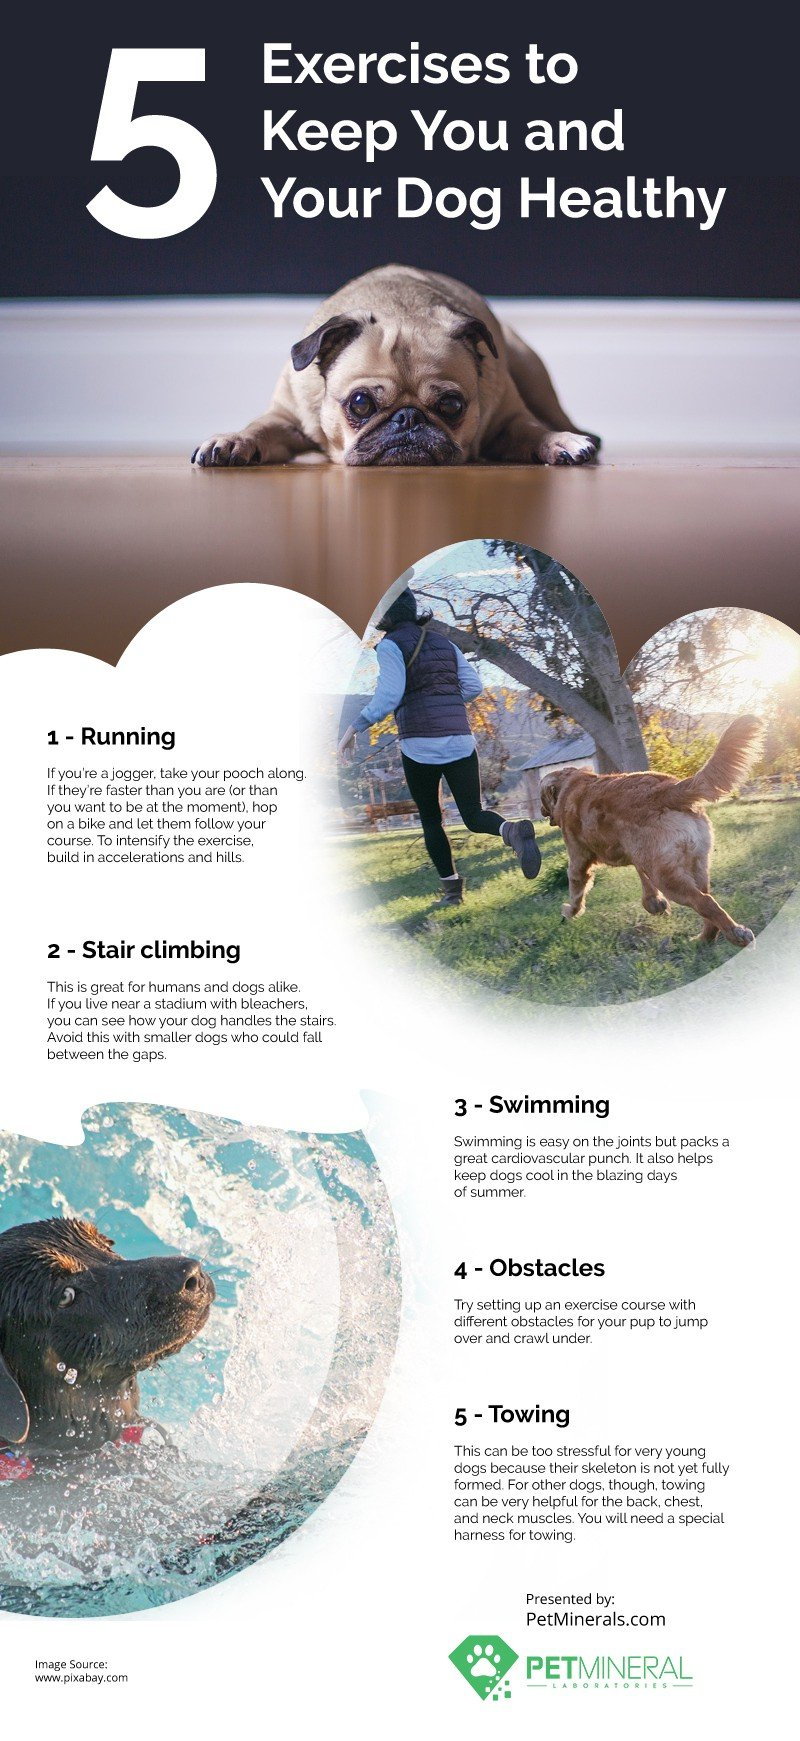 5 Exercises to Keep You and Your Dog Healthy [infographic]